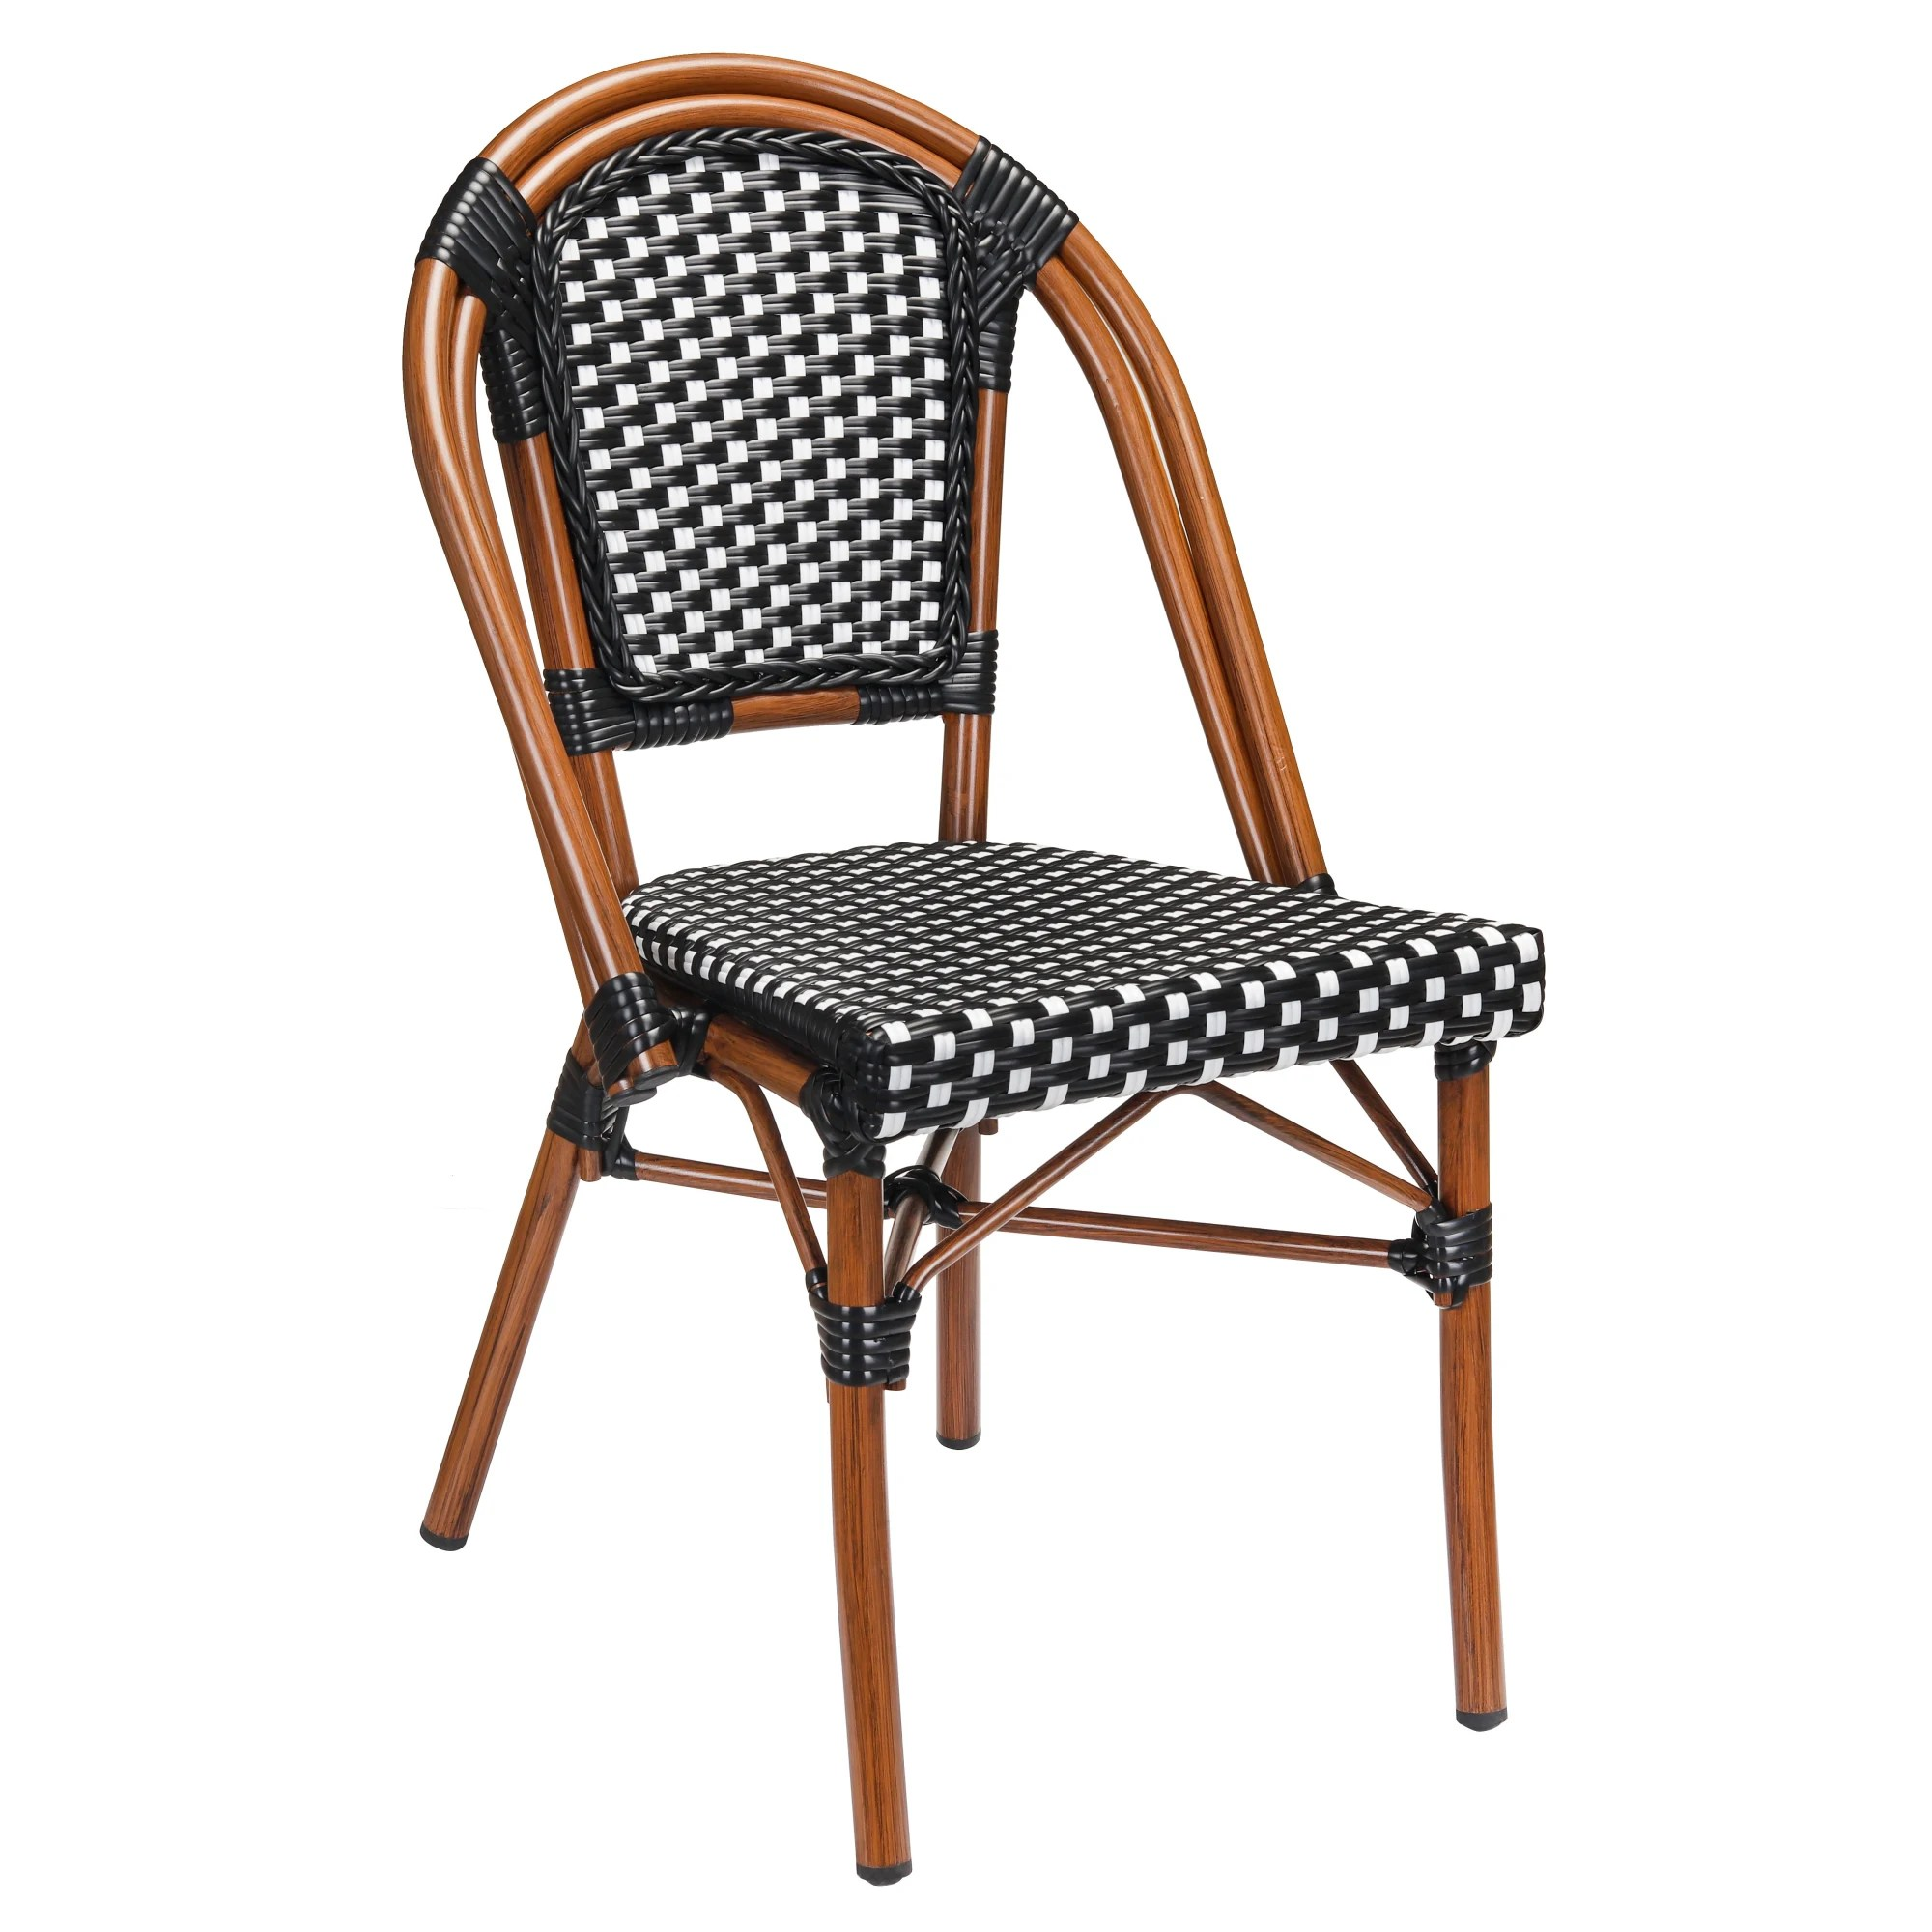 aluminum bamboo patio chair with black white rattan